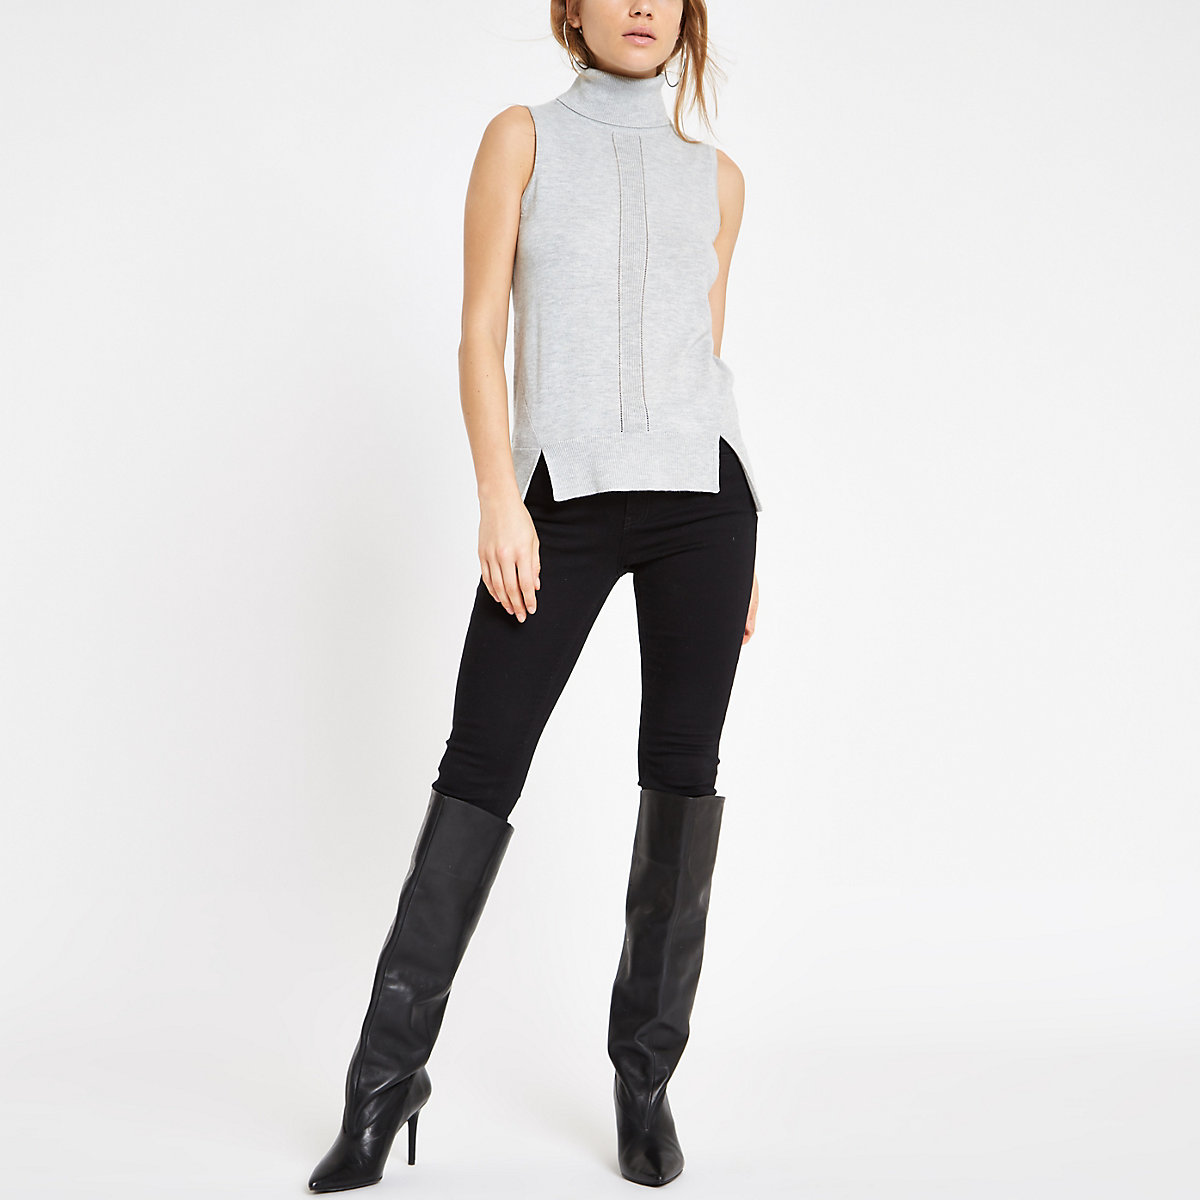 Grey roll neck sleeveless top